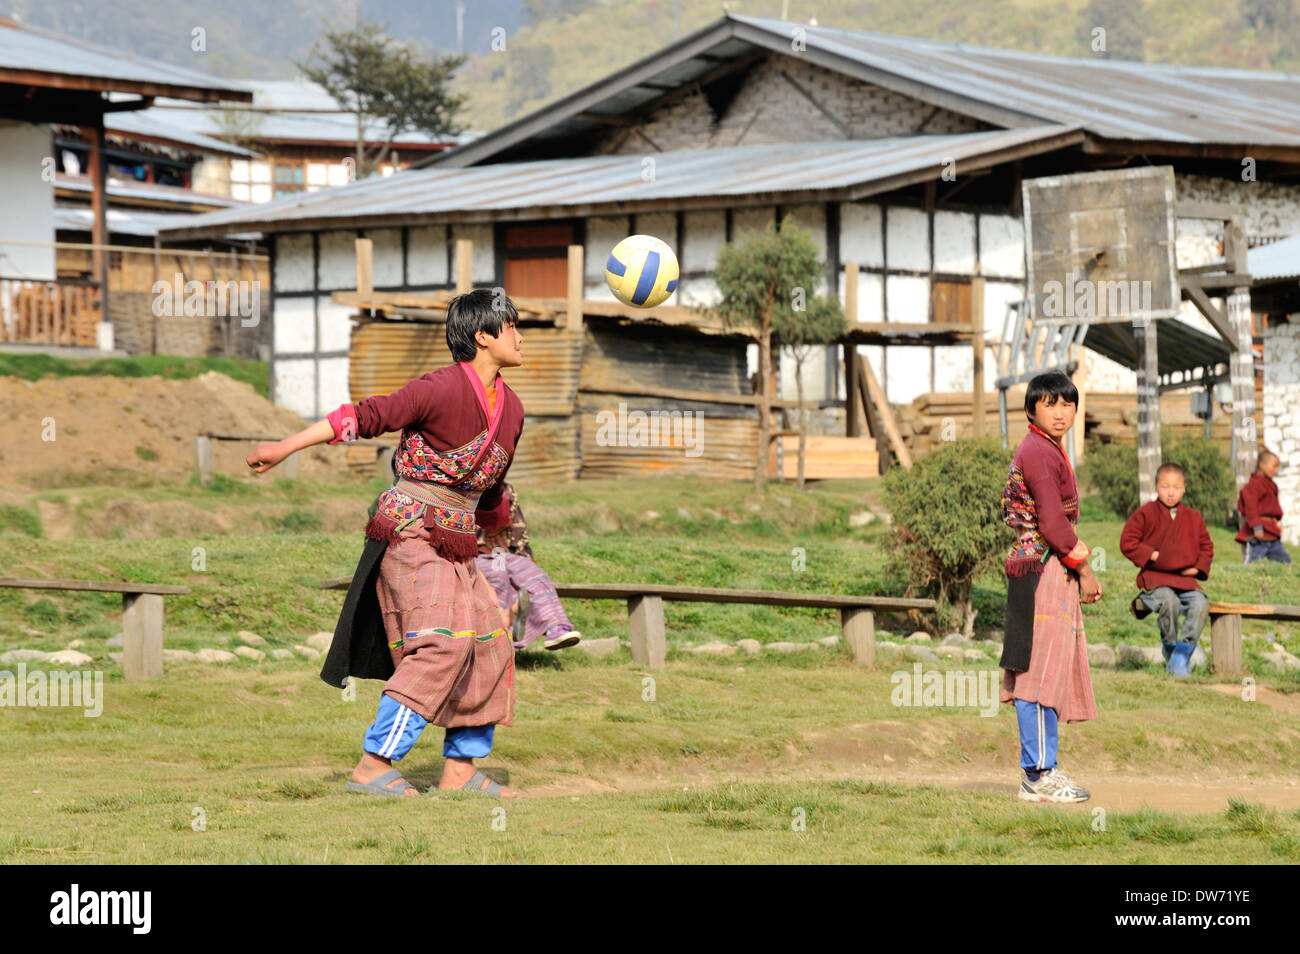 Schoolchildren wearing traditional clothes play volleyball in school playground, village of Sakteng, Eastern Bhutan - Stock Image